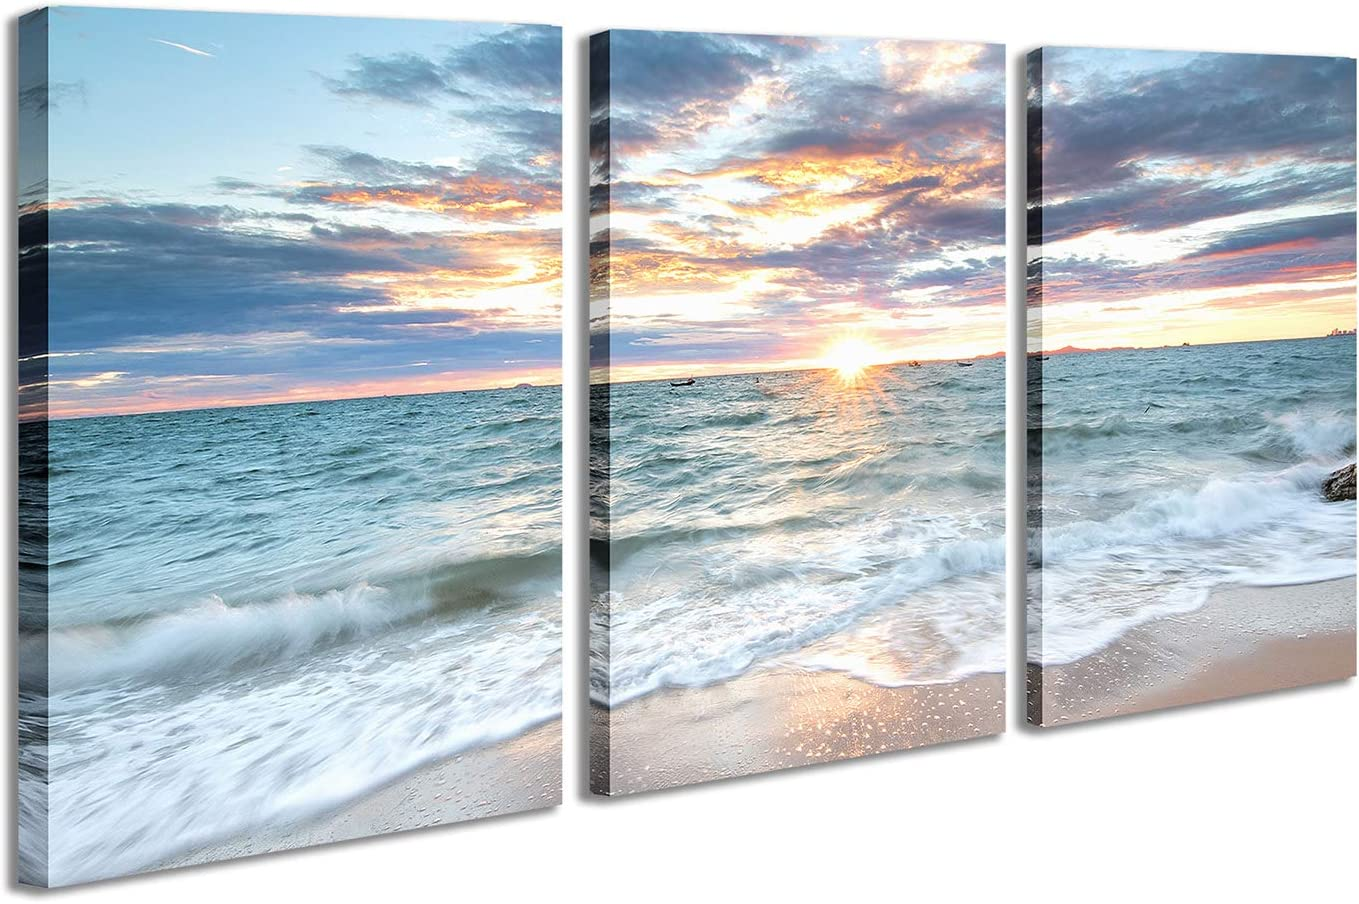 3 Panel Canvas Wall Painting Sunset Colorful Clouds Print Pictures Ocean Scenery Waves Beach Wall Art Modern and Framed Decor for Bedroom Living Room Office 12x16 inch